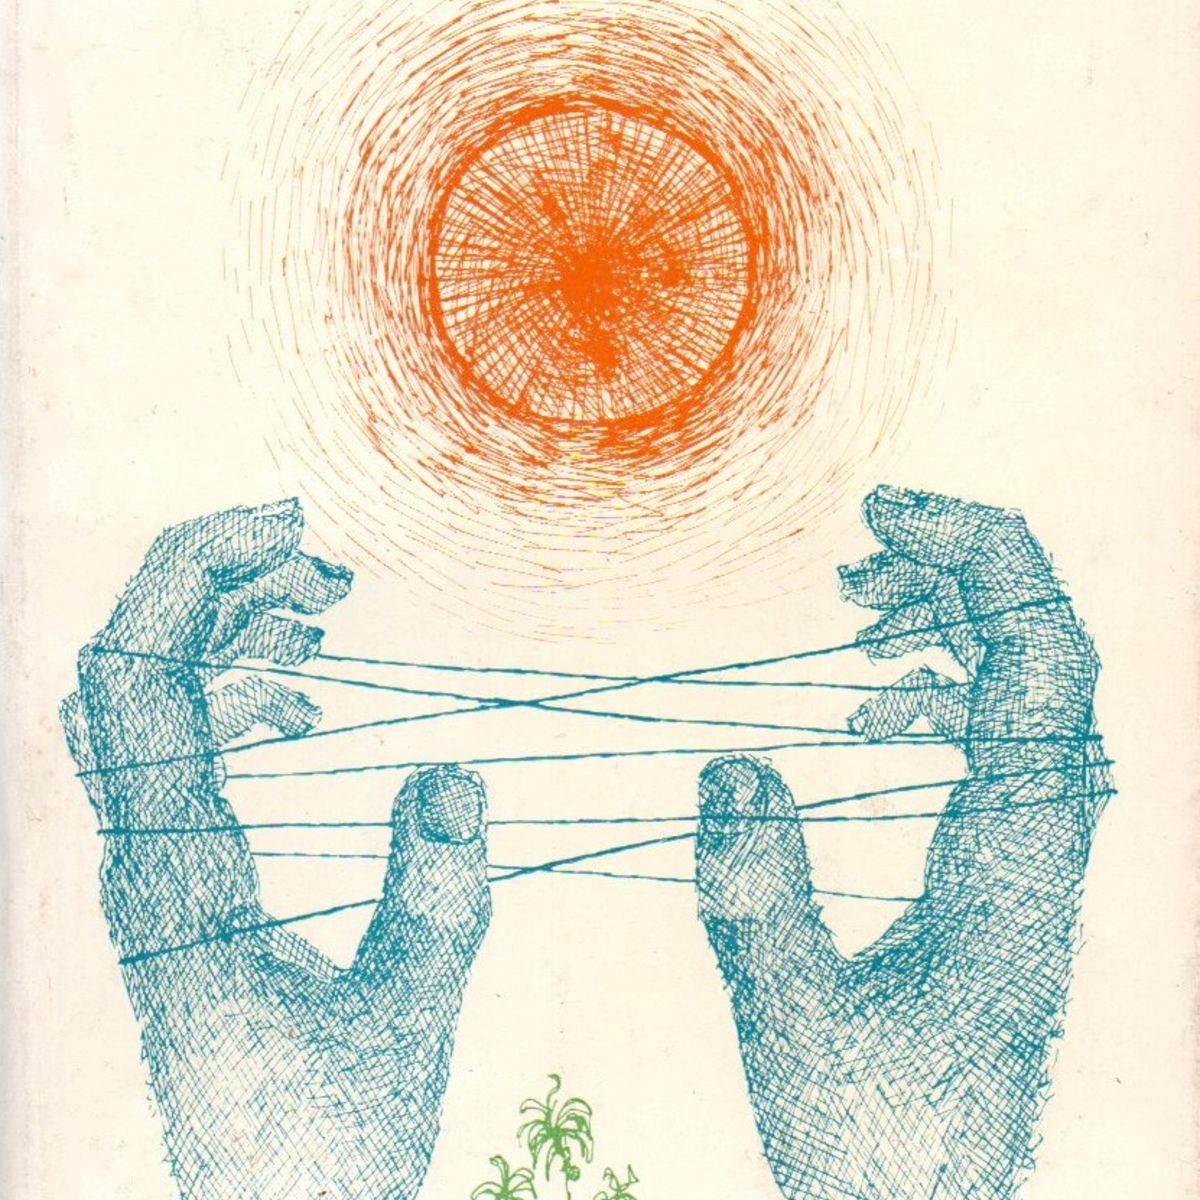 Cats-Cradle-Kurt-Vonnegut-book-cover_1.jpg